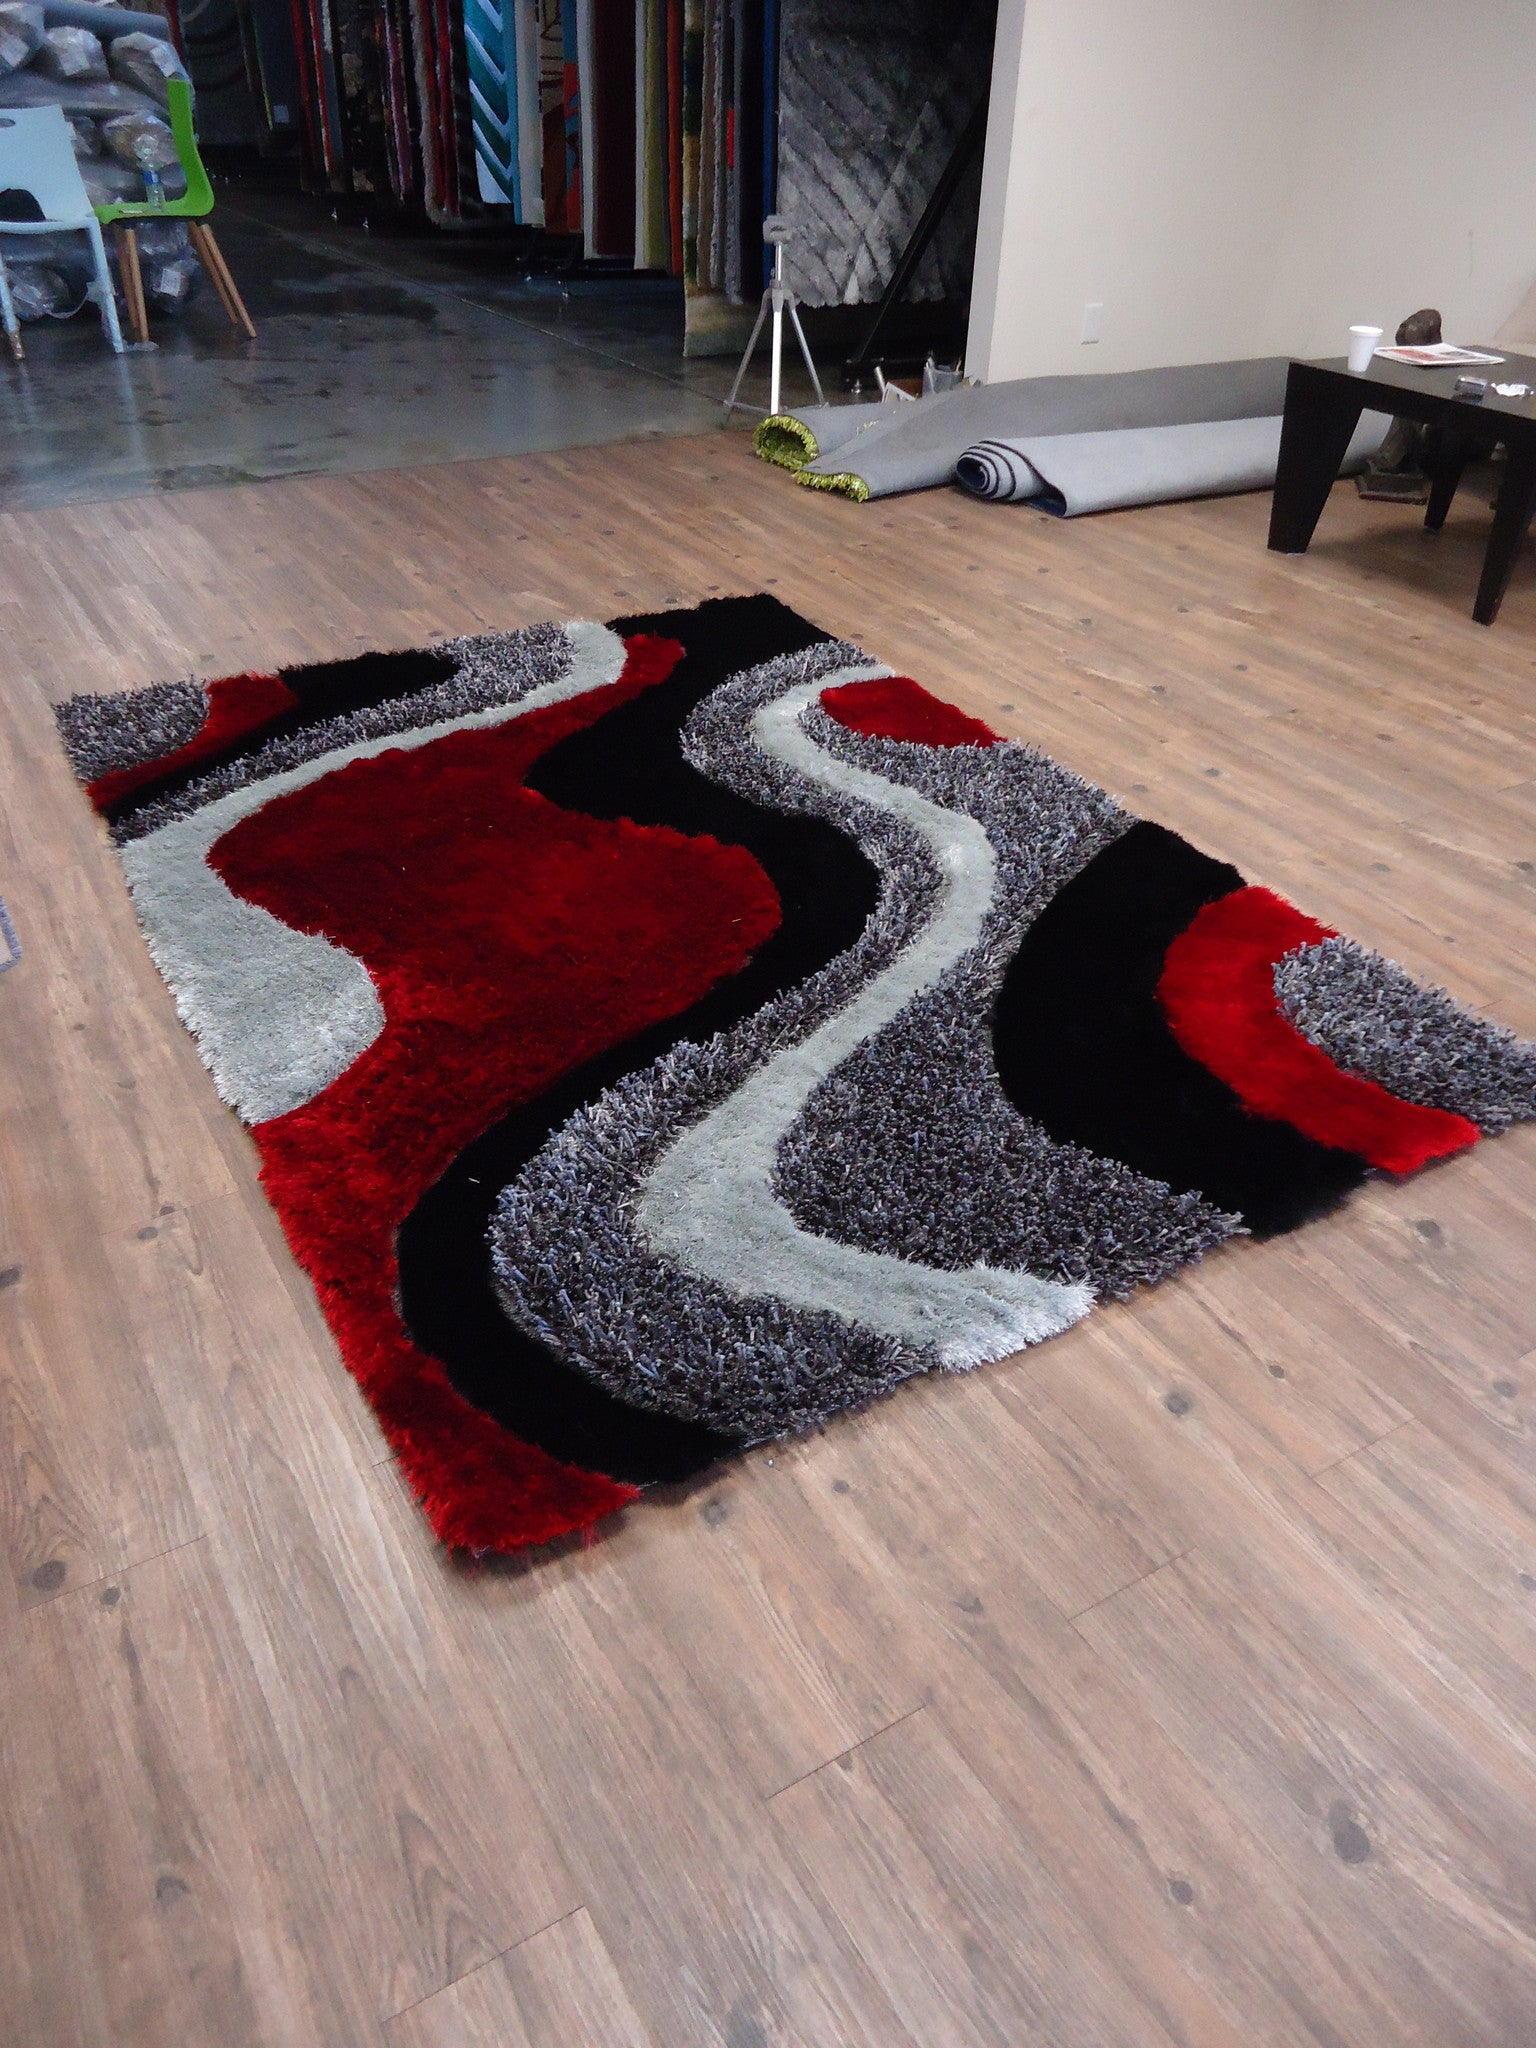 Black/Grey with Red Shag Area Rug 7u00276 x 10u00273 - Black And Red Area Rugs Roselawnlutheran